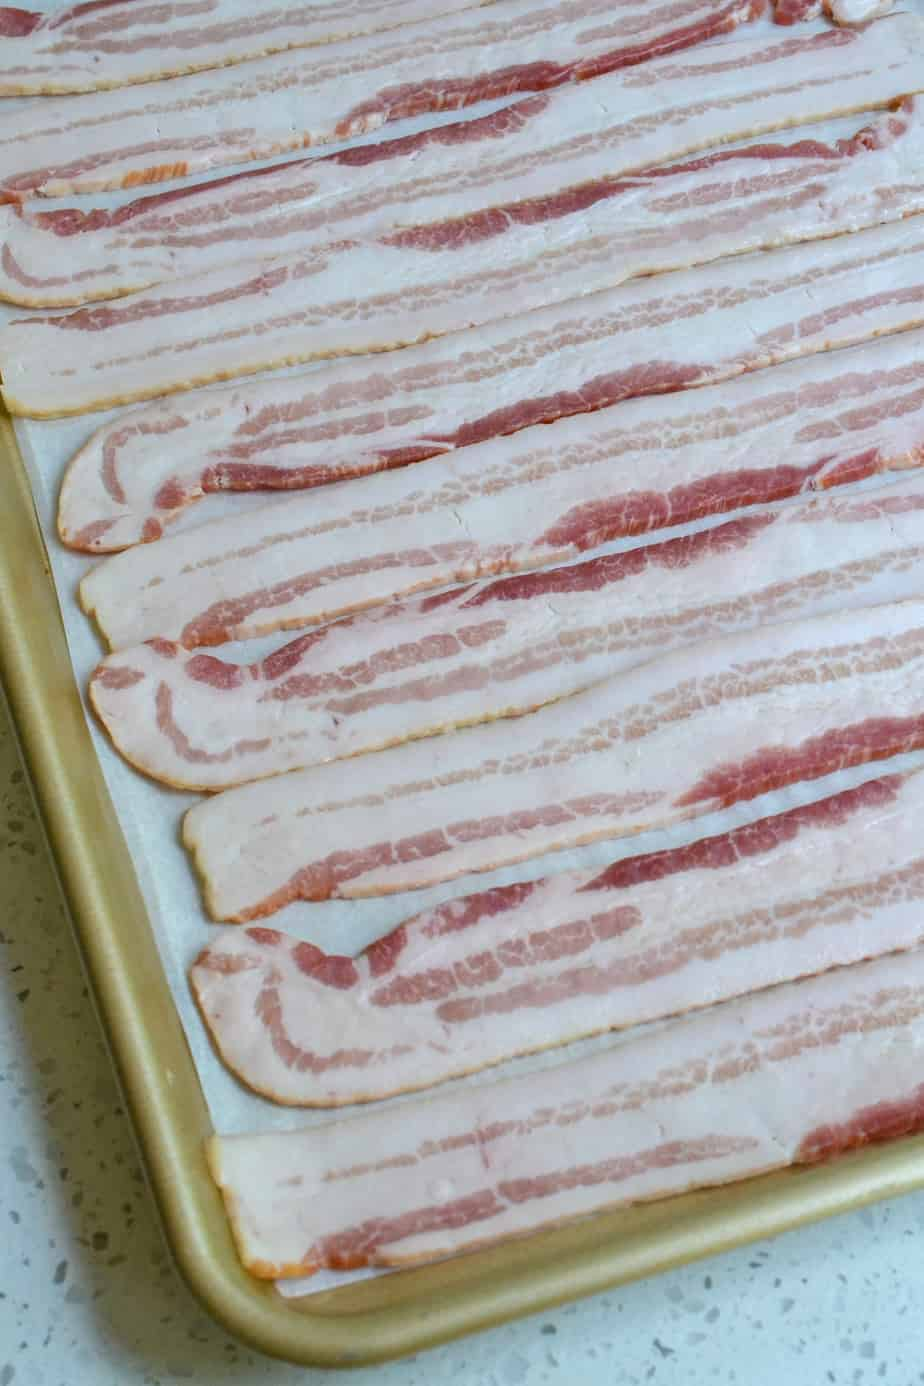 Raw bacon in a single layer on a baking sheet.